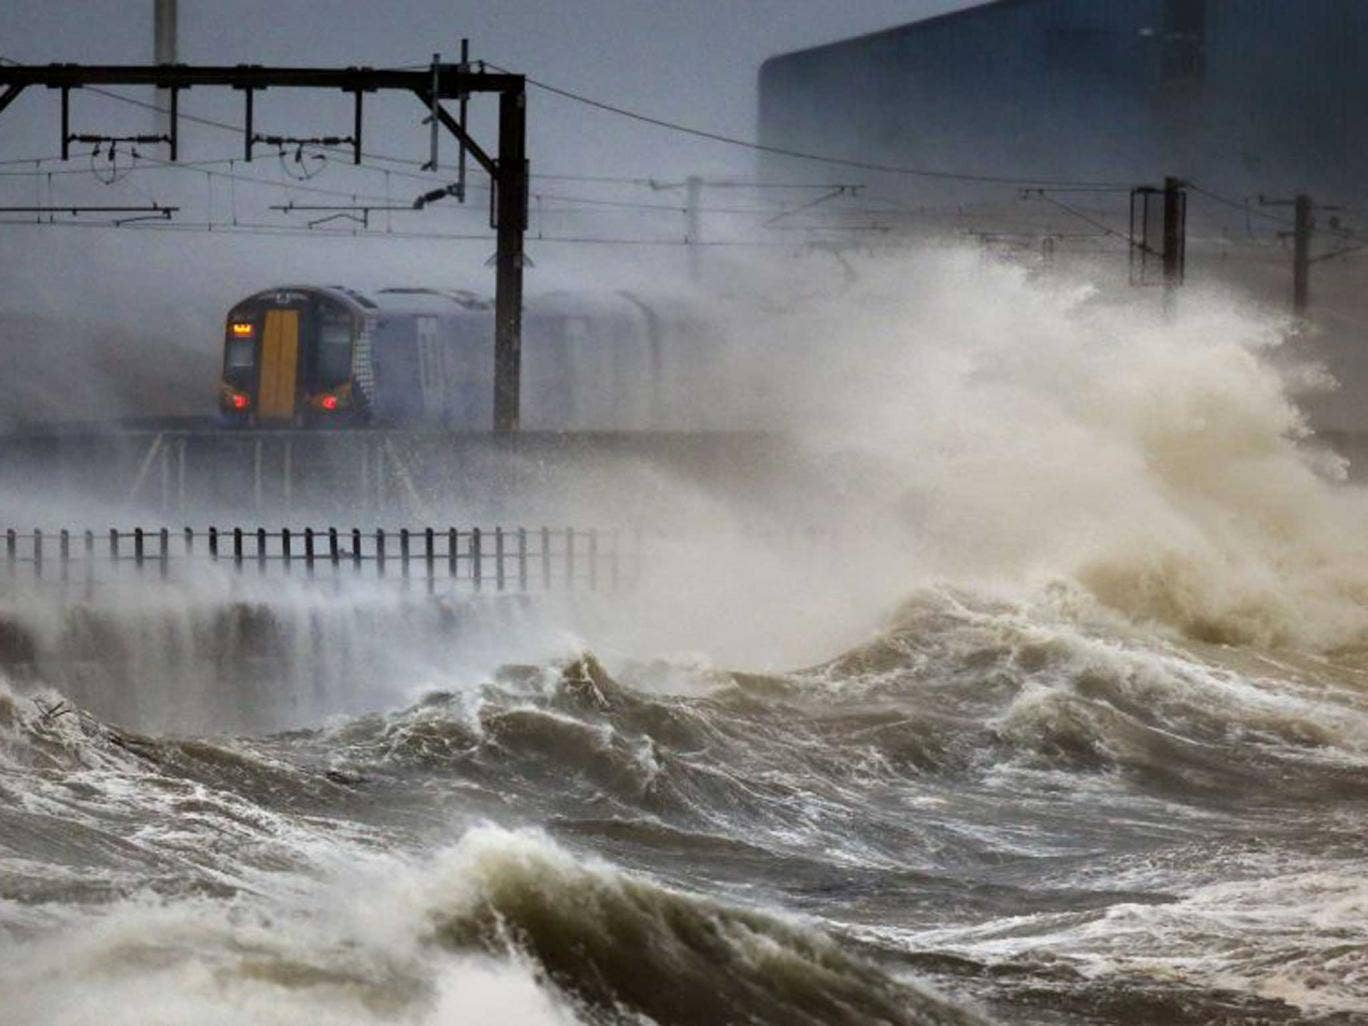 A train passes along the coast at Saltcoats in Scotland, as a combination of high tides, heavy rains and strong winds are expected to bring yet more severe flooding to many parts of the country